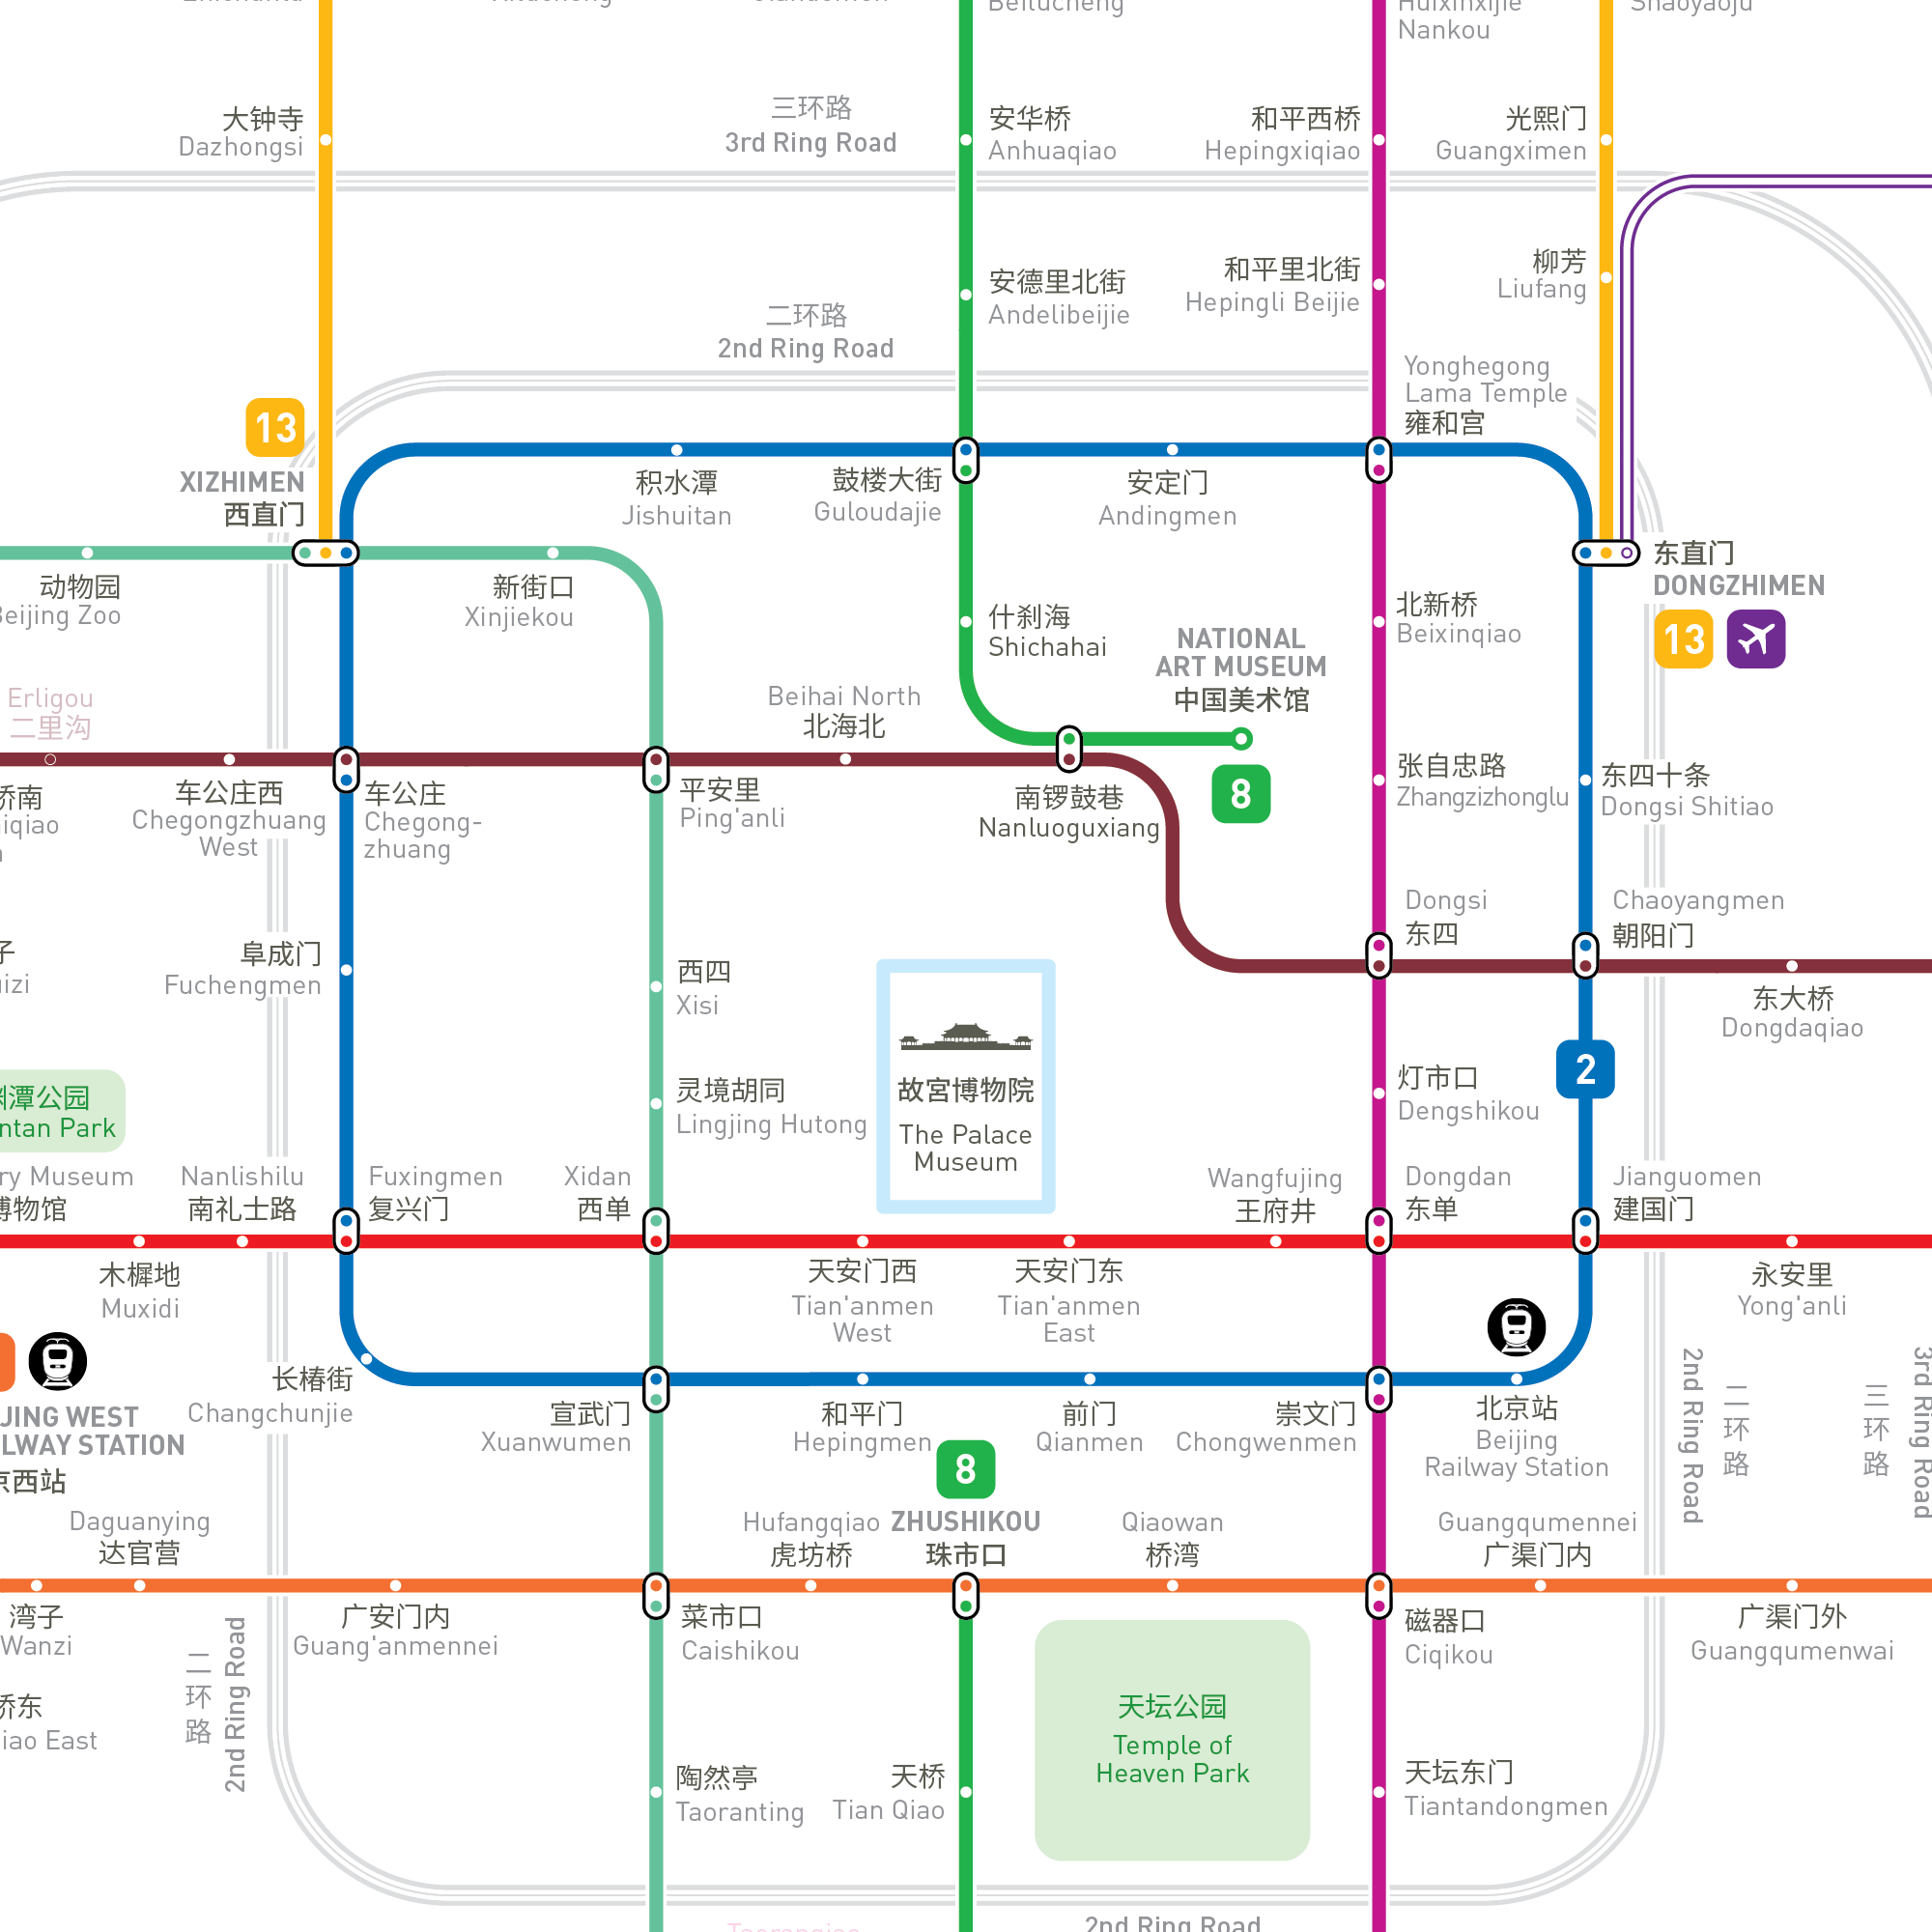 North Korean Subway Map.Works Inat